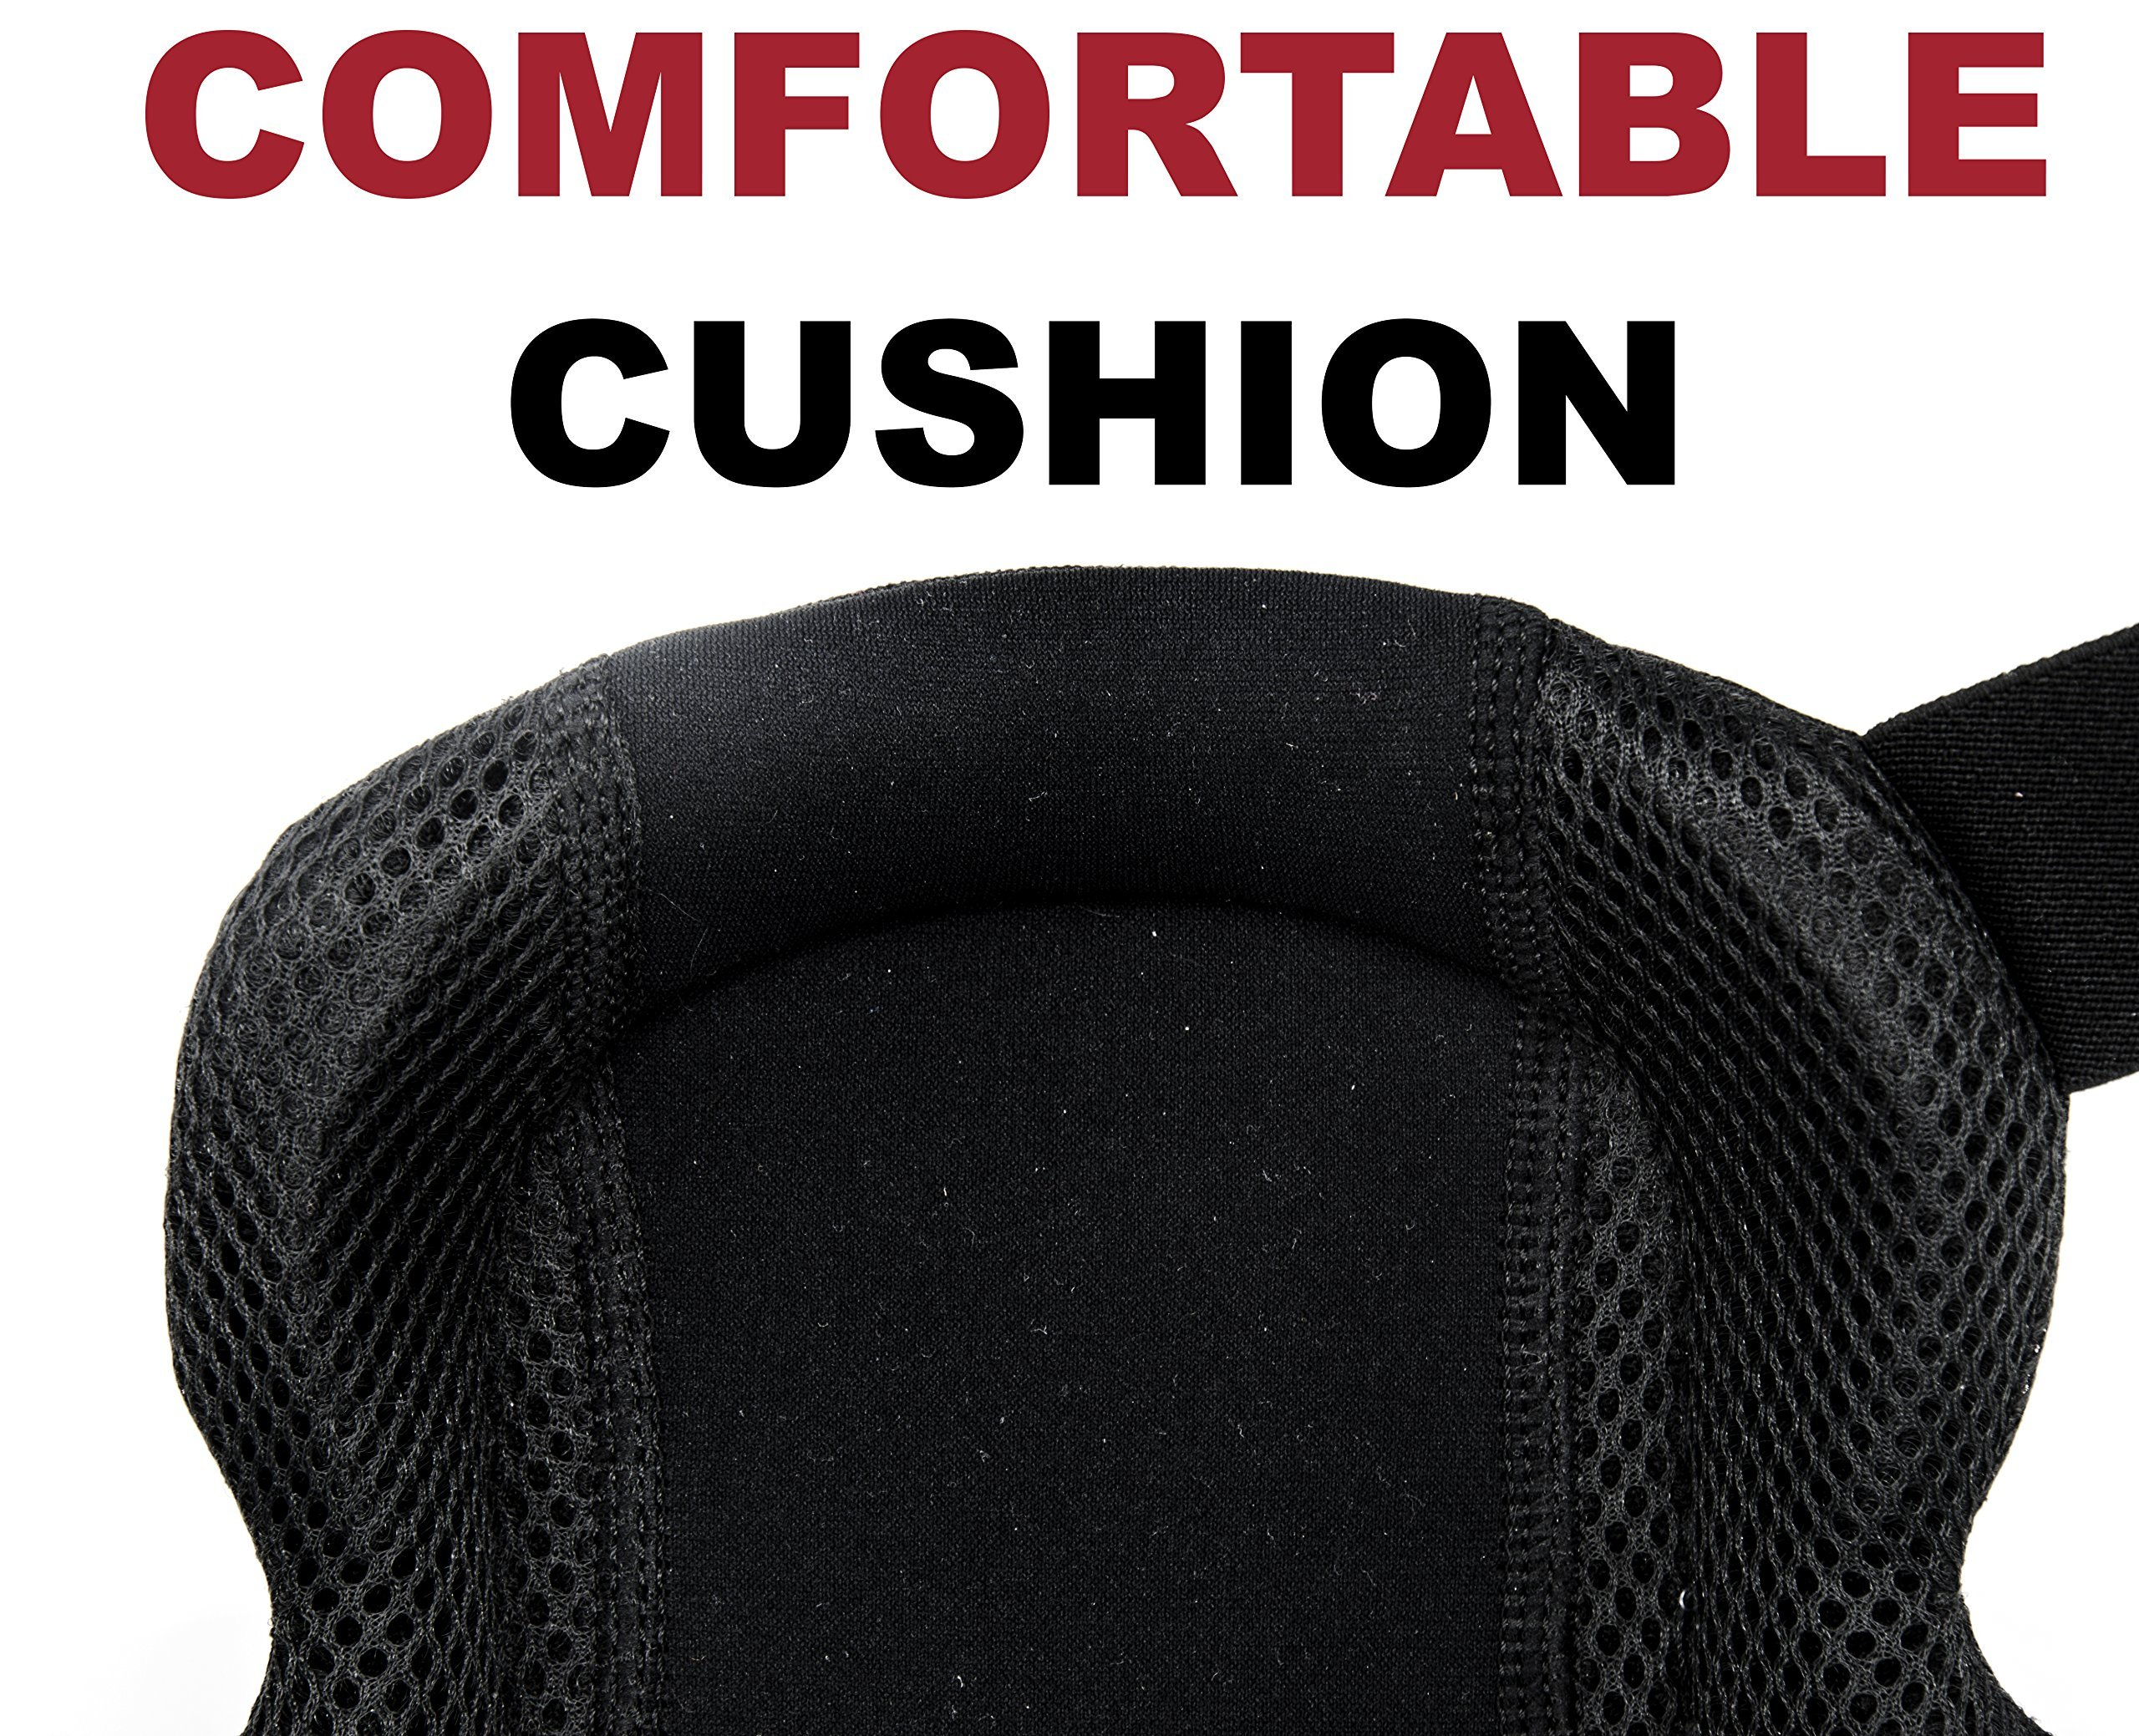 Professional Knee Pads - Easy to WEAR Heavy Duty Memory Foam Padding, Comfortable Gel Cushion, Strong Straps FITS All, Adjustable Easy-Fix Clips - Best for Gardening, Construction, Flooring by Kutir (Image #3)